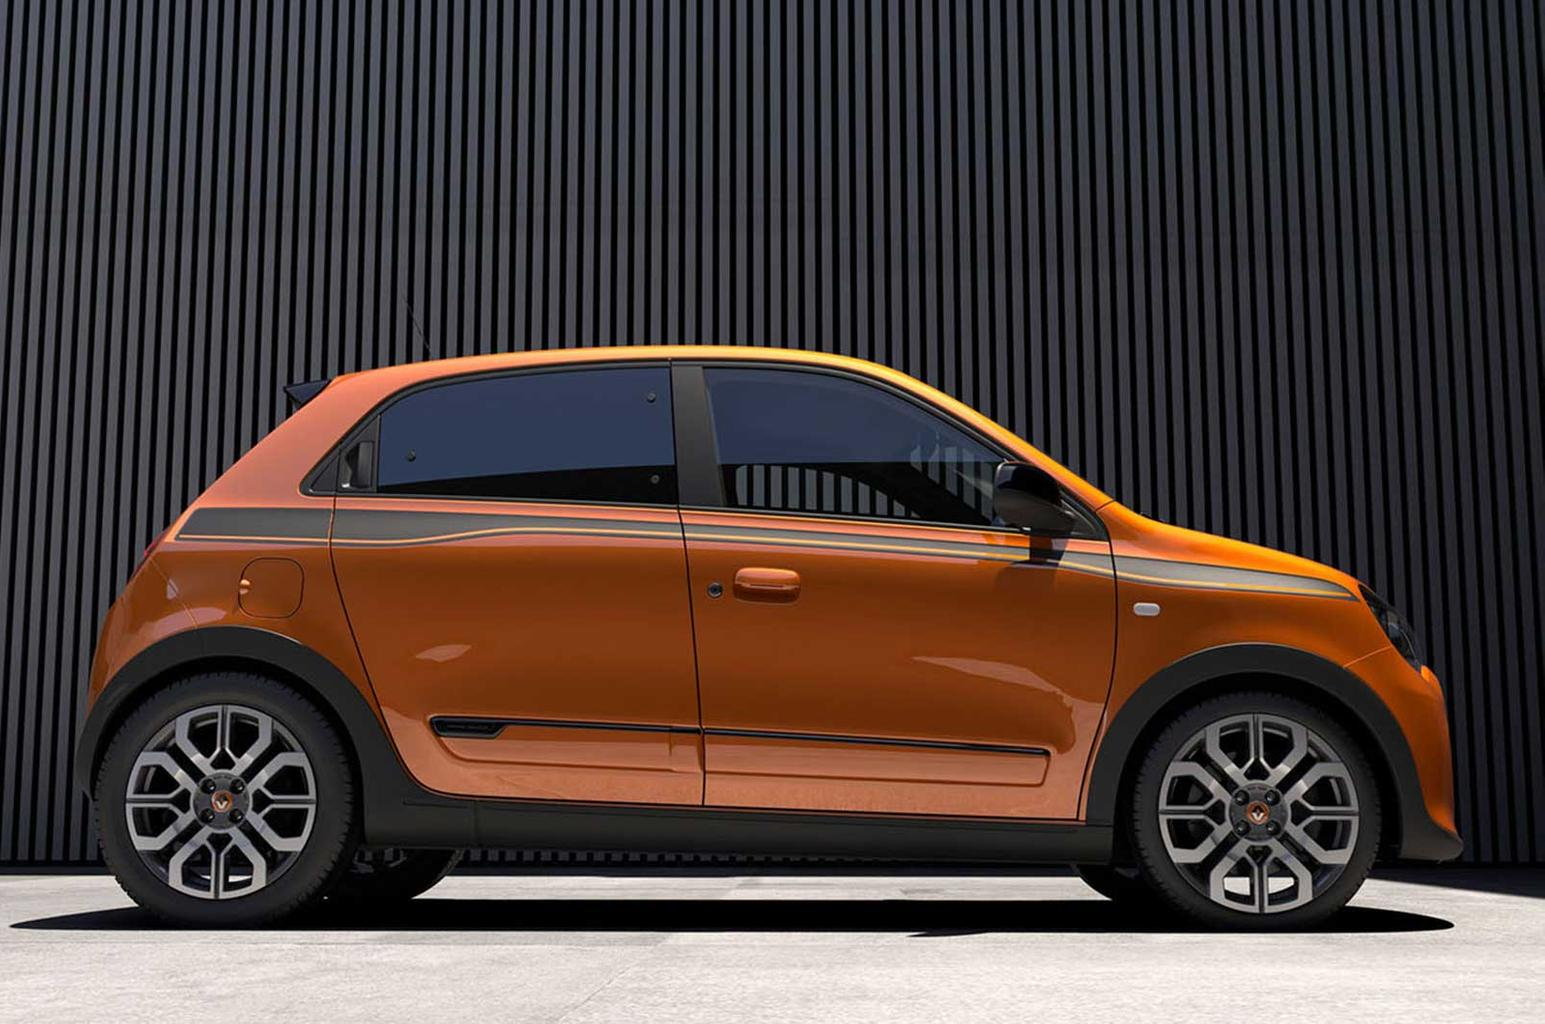 New Renault Twingo GT unveiled